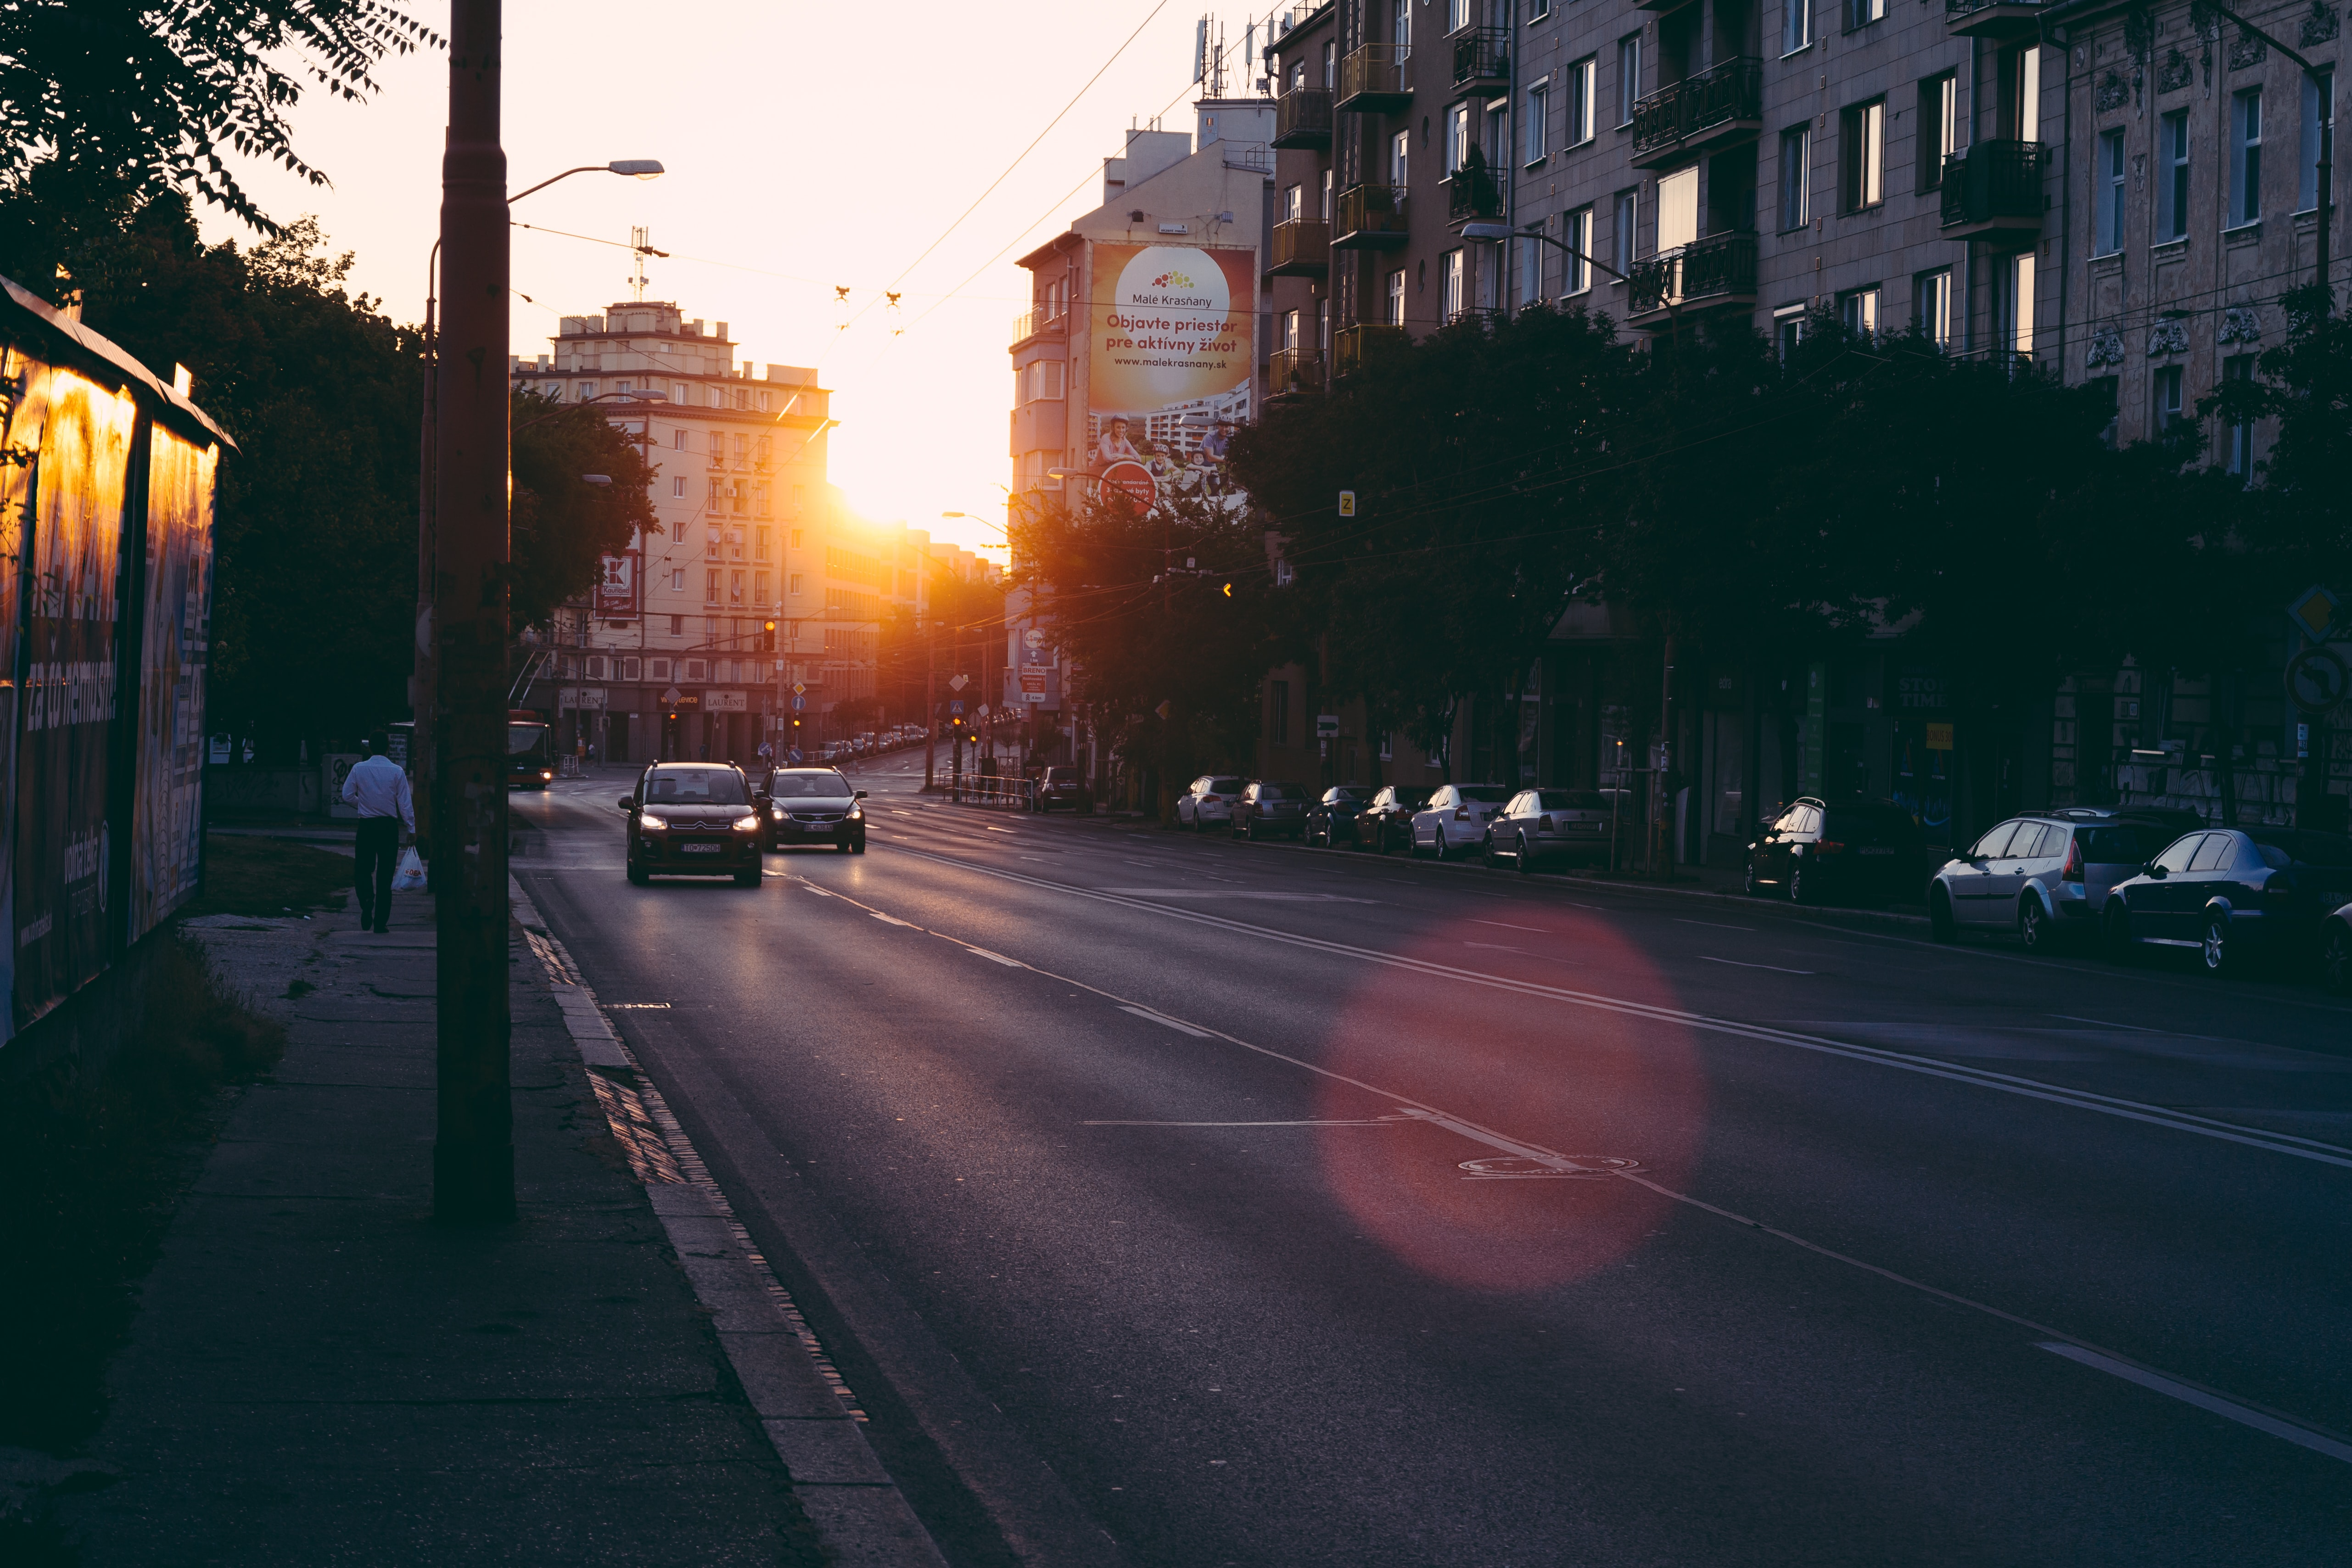 two vehicle on road during sun rise